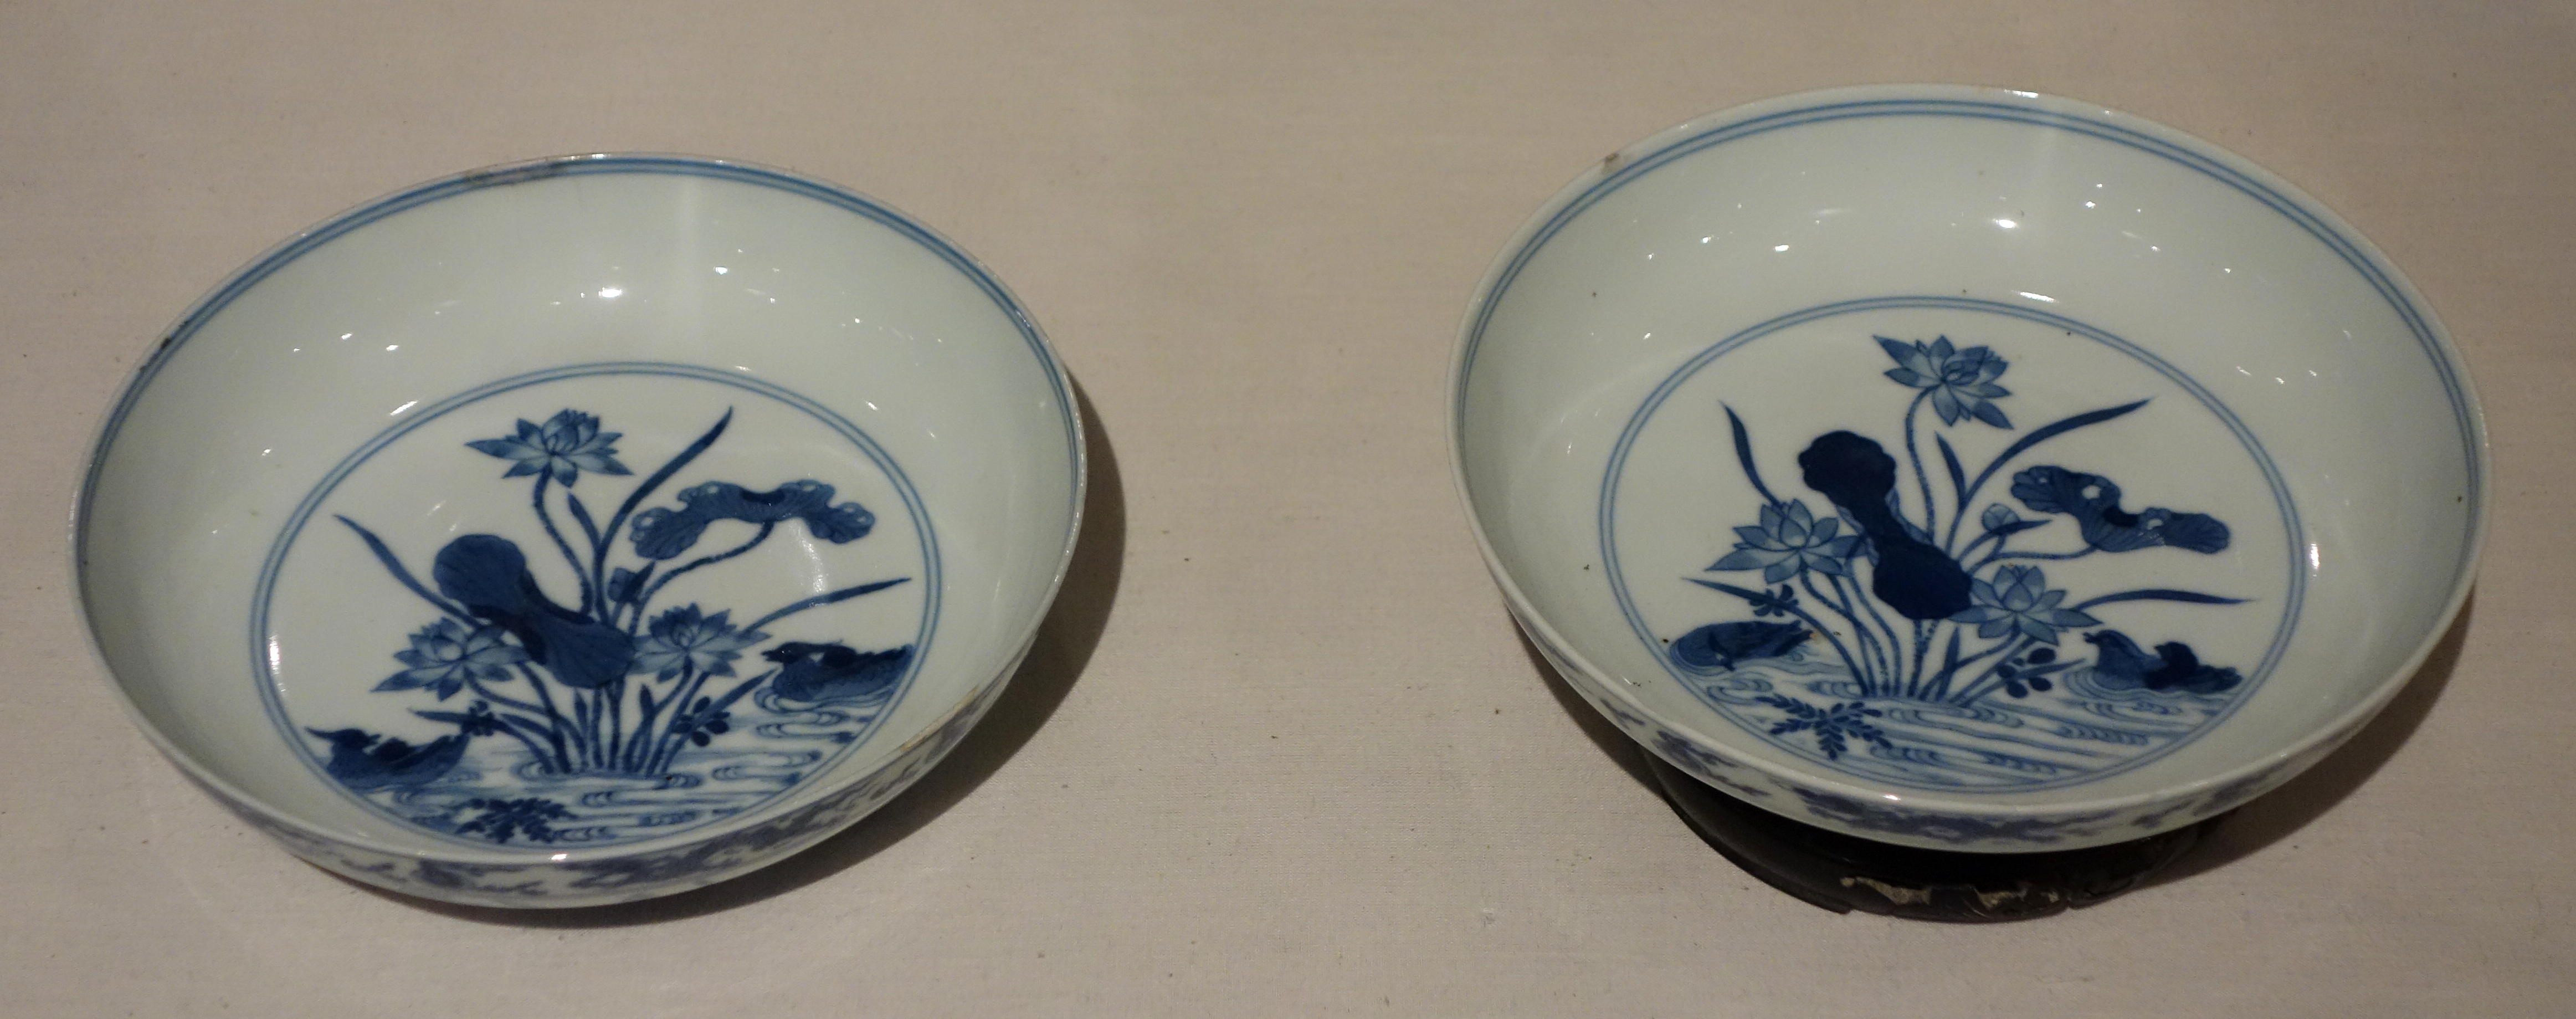 File:Chinese Pair of Dishes, Yongzheng Period, 1723-1735